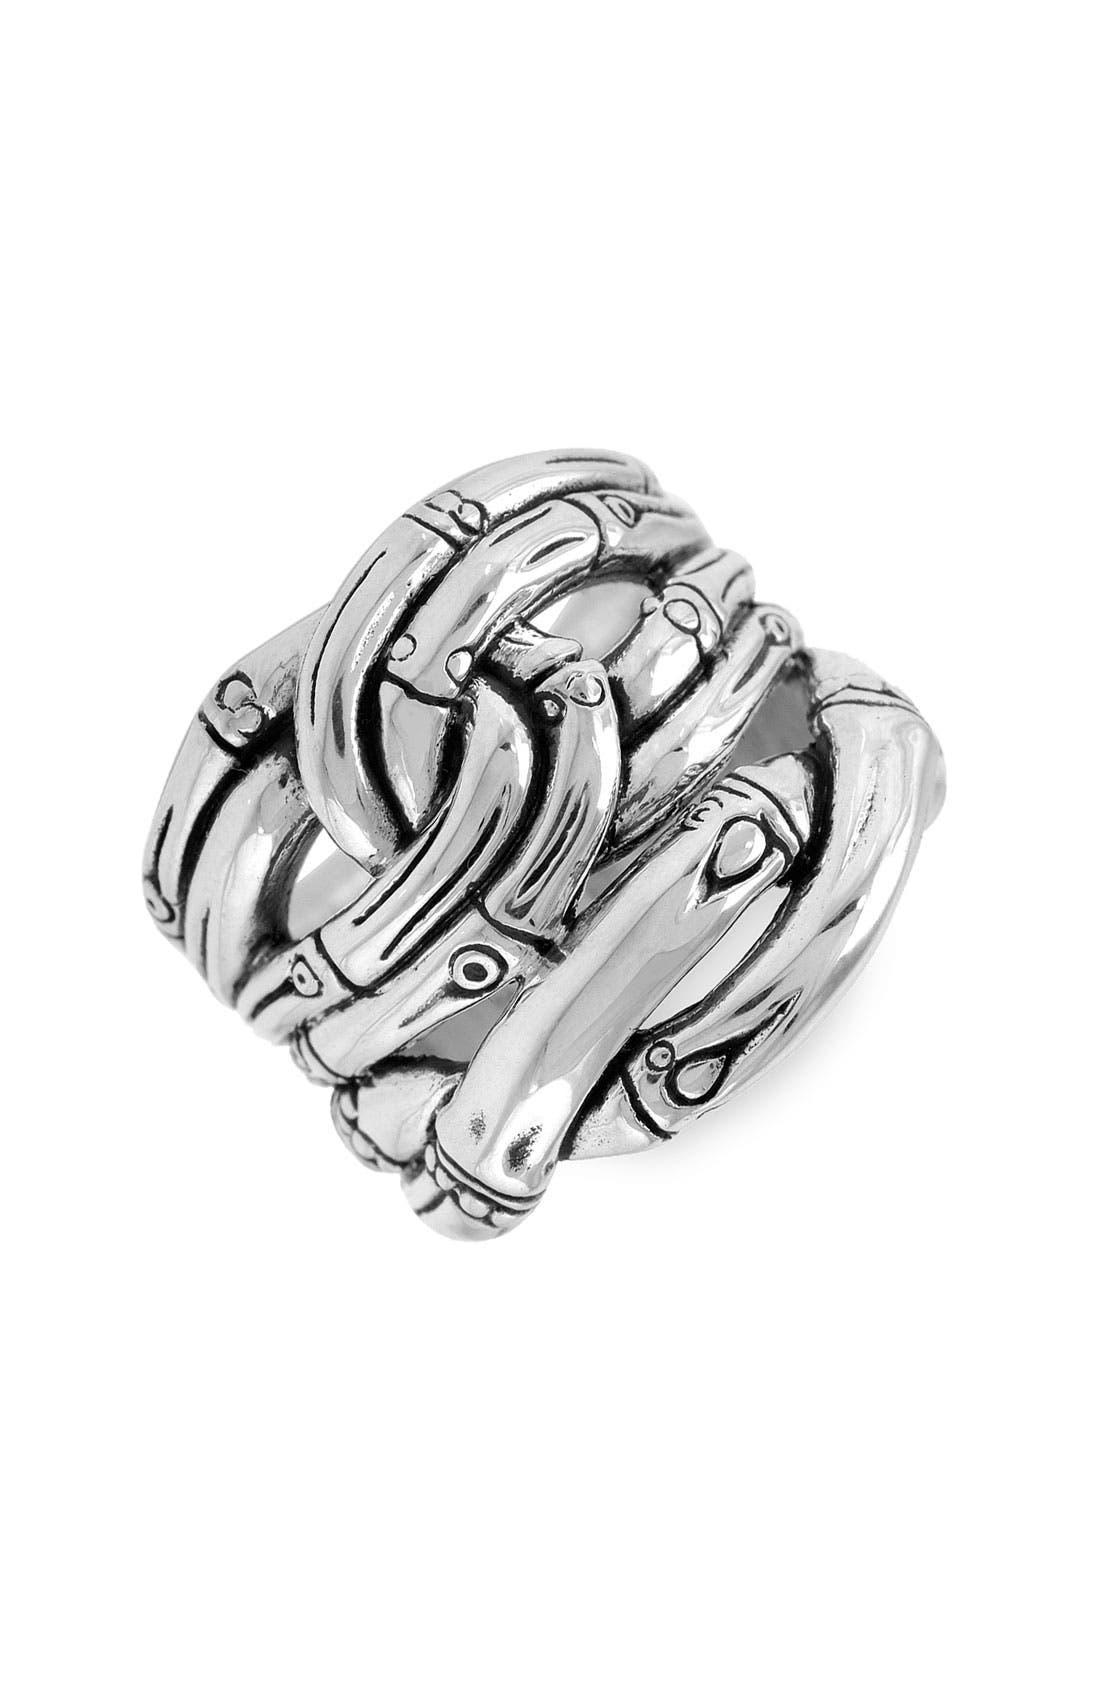 Alternate Image 1 Selected - John Hardy 'Bamboo' Woven Silver Ring